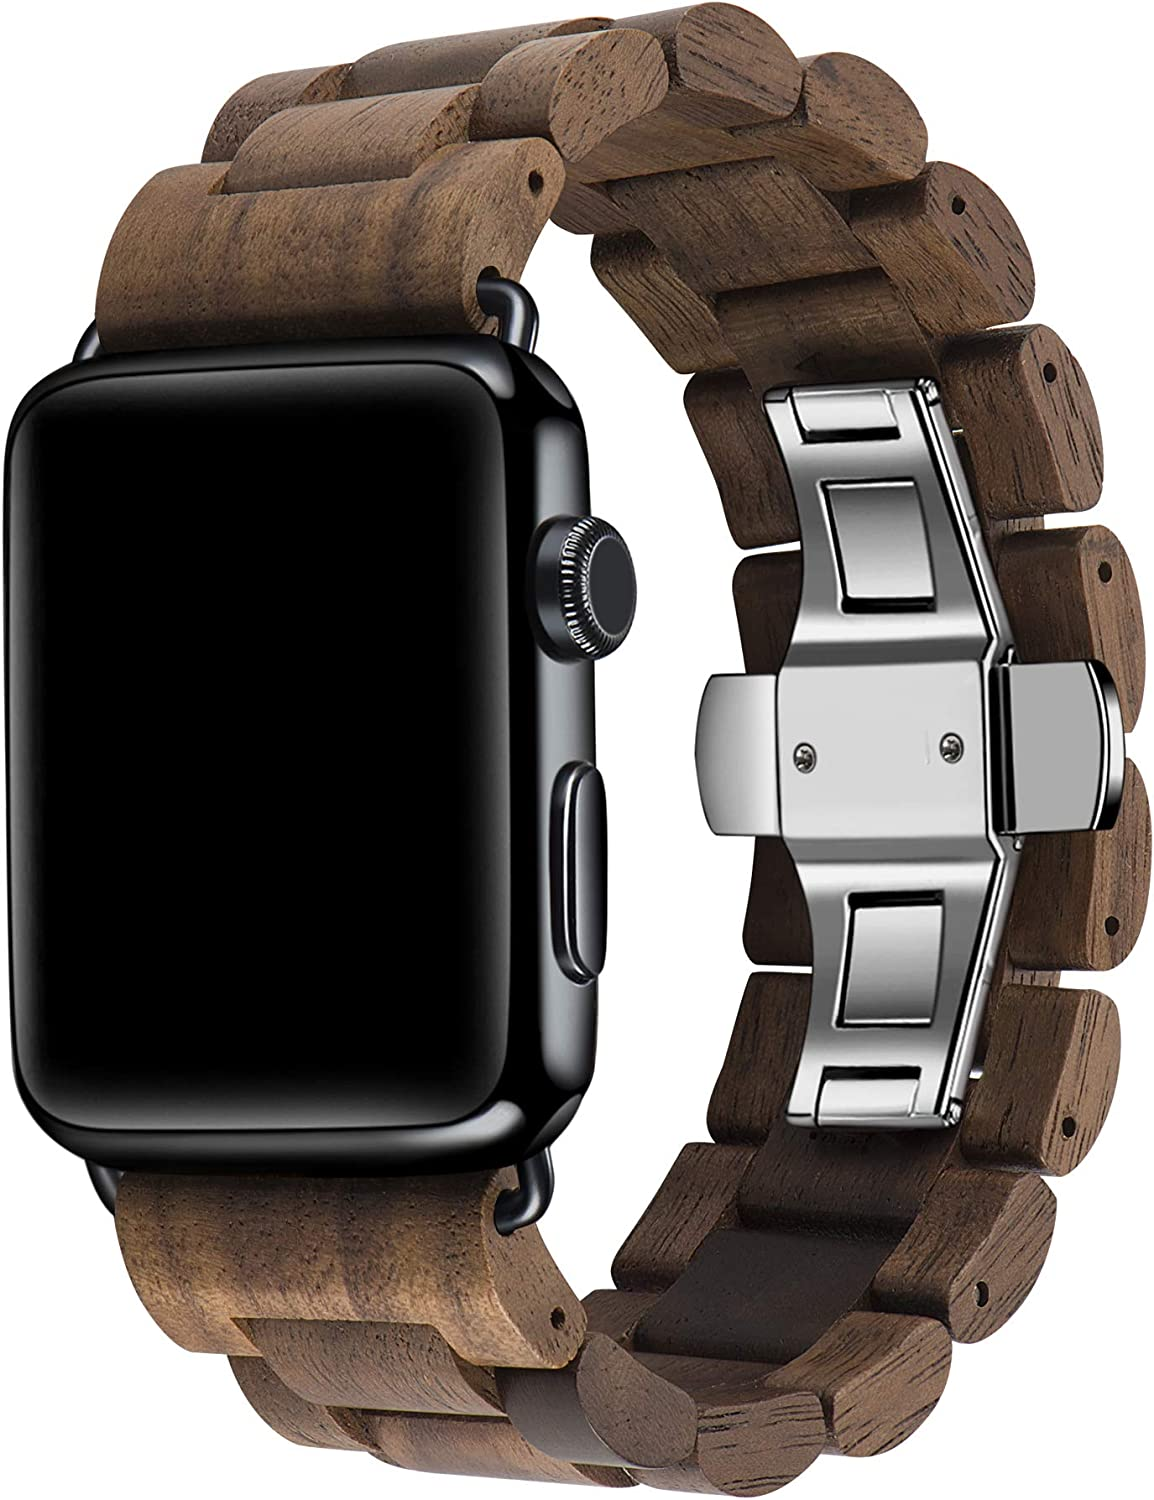 Kinobo Wooden Watch Band Compatible with Apple Watch, 100% Eco-Friendly Natural Hardwood Watch Strap Thickened Wrist Bracelet for iWatch Series 5, 4, 3, 2, 1, Sport, Edition (Walnut-38mm/40mm)